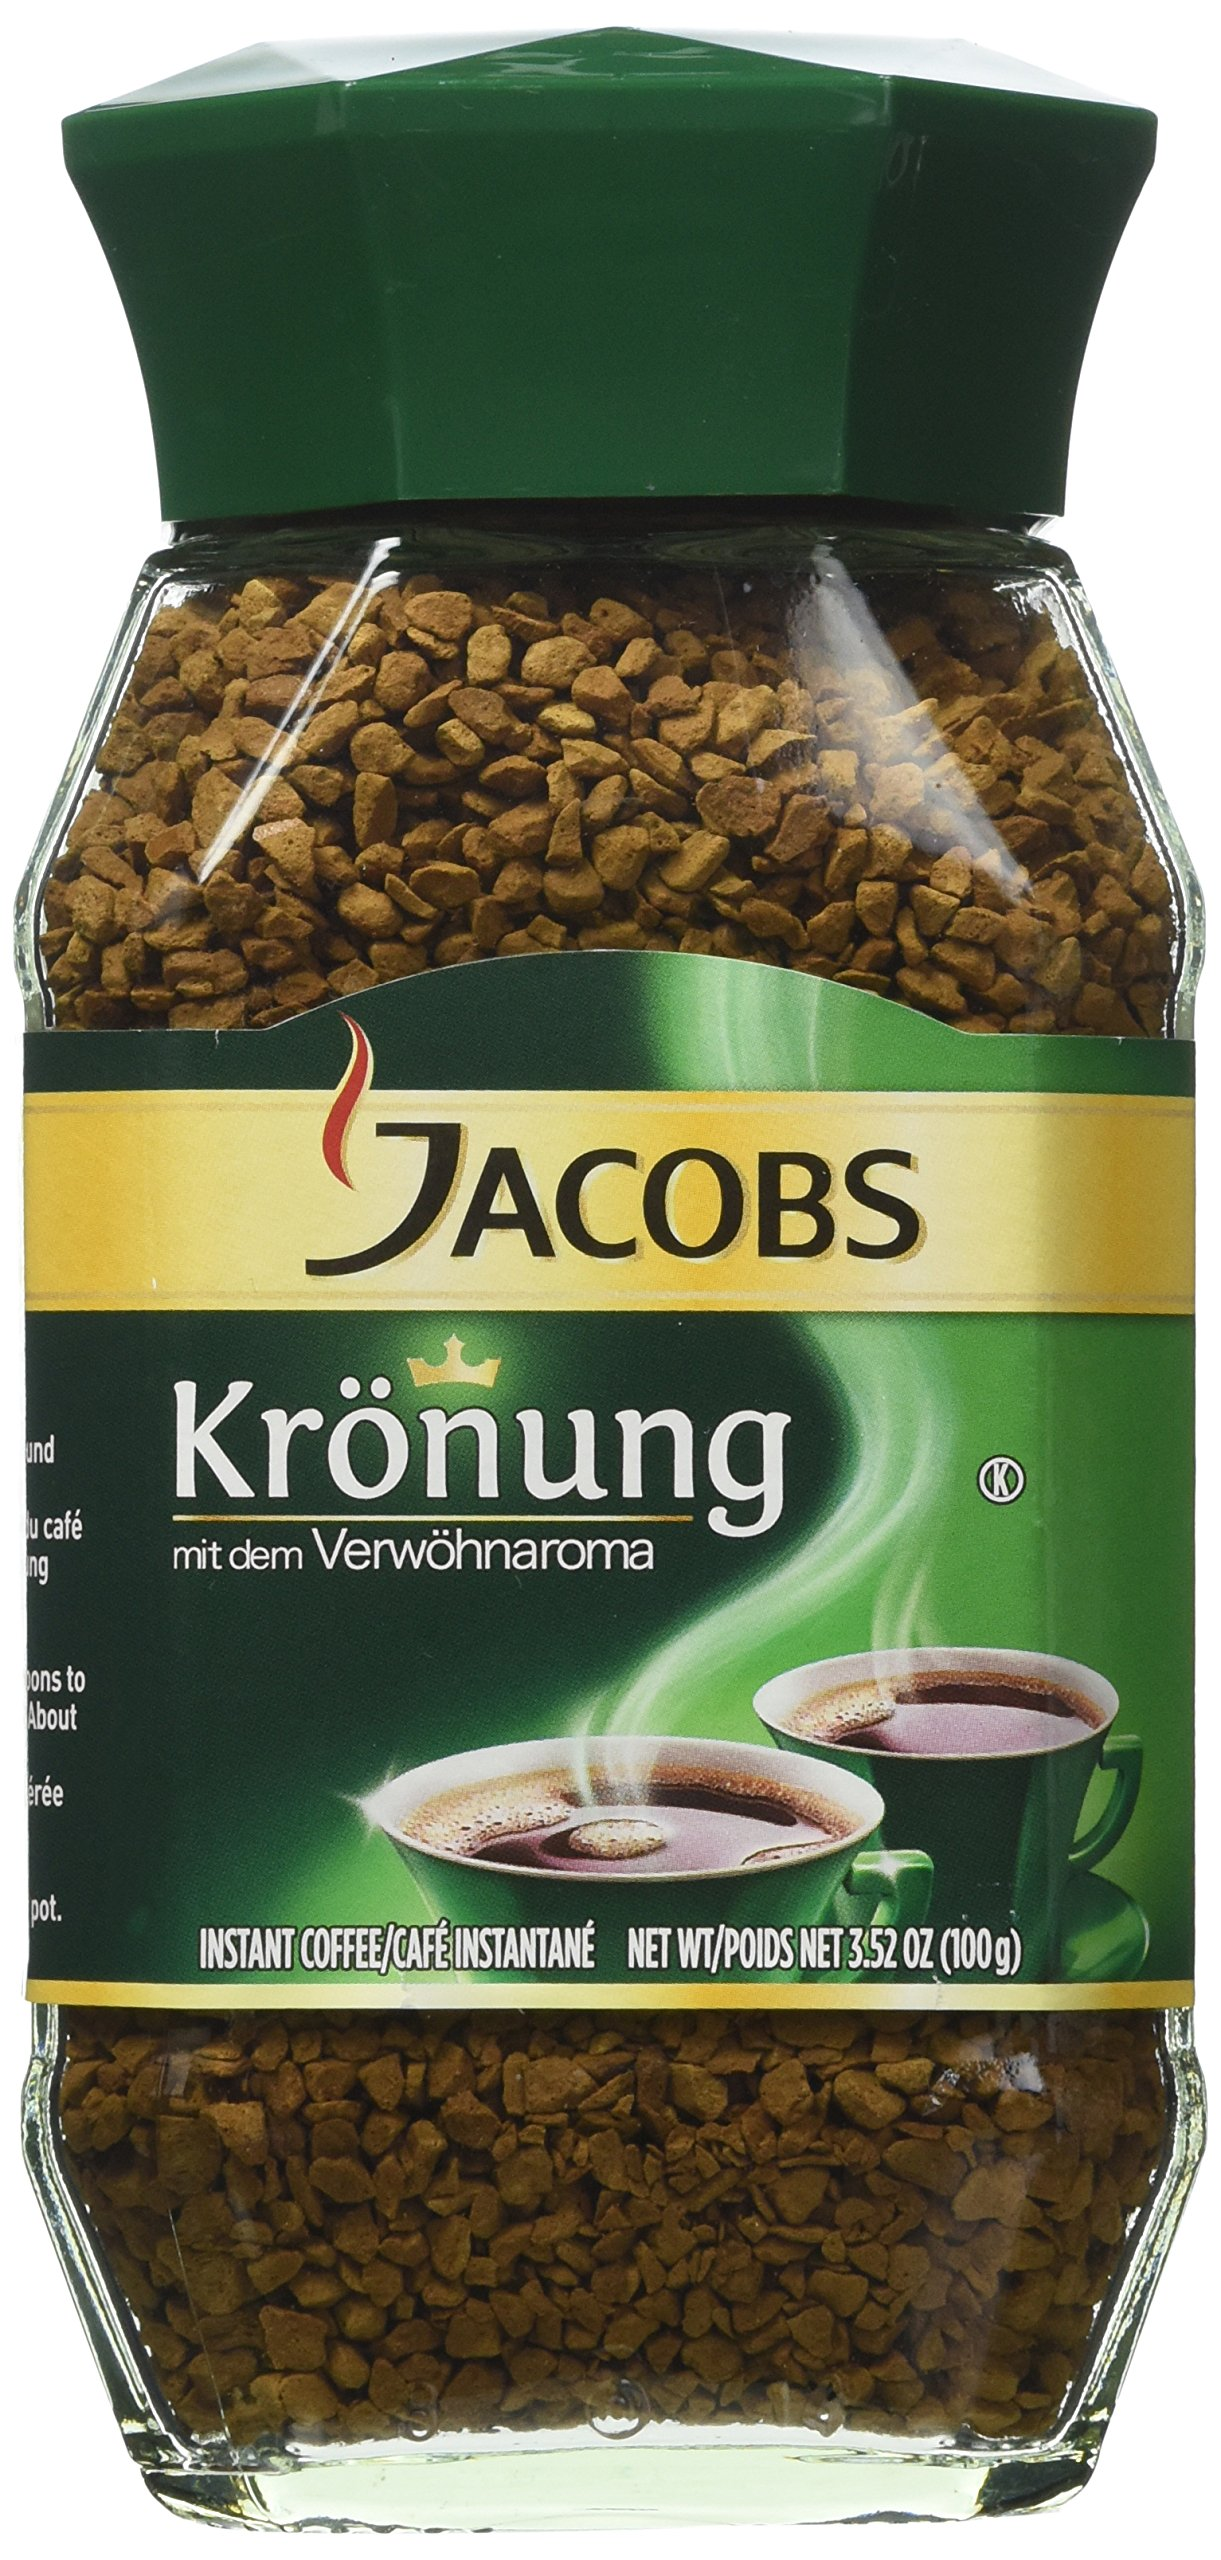 2 Pack of Jacobs Kronung Instant Coffee 3.5oz/100g